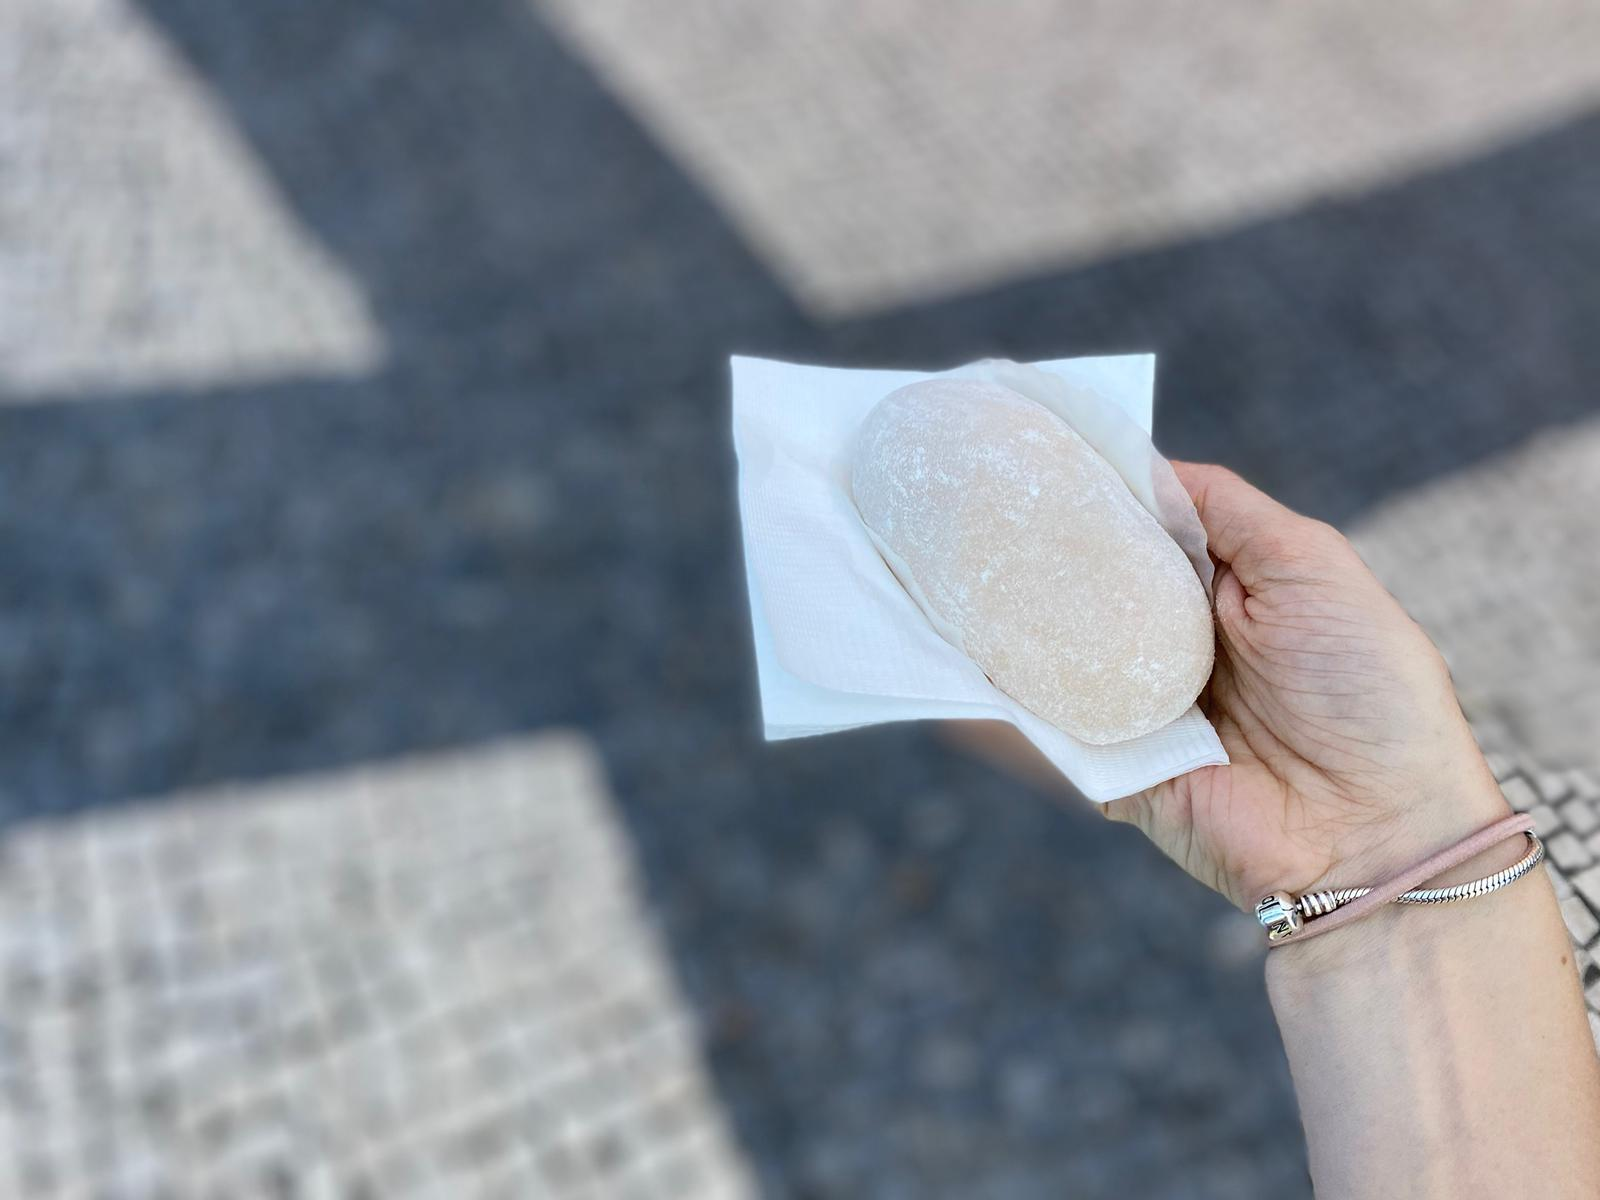 Mochi Macau Mochi in Hand with Blurred Background Credits Ksenia Kuzmina